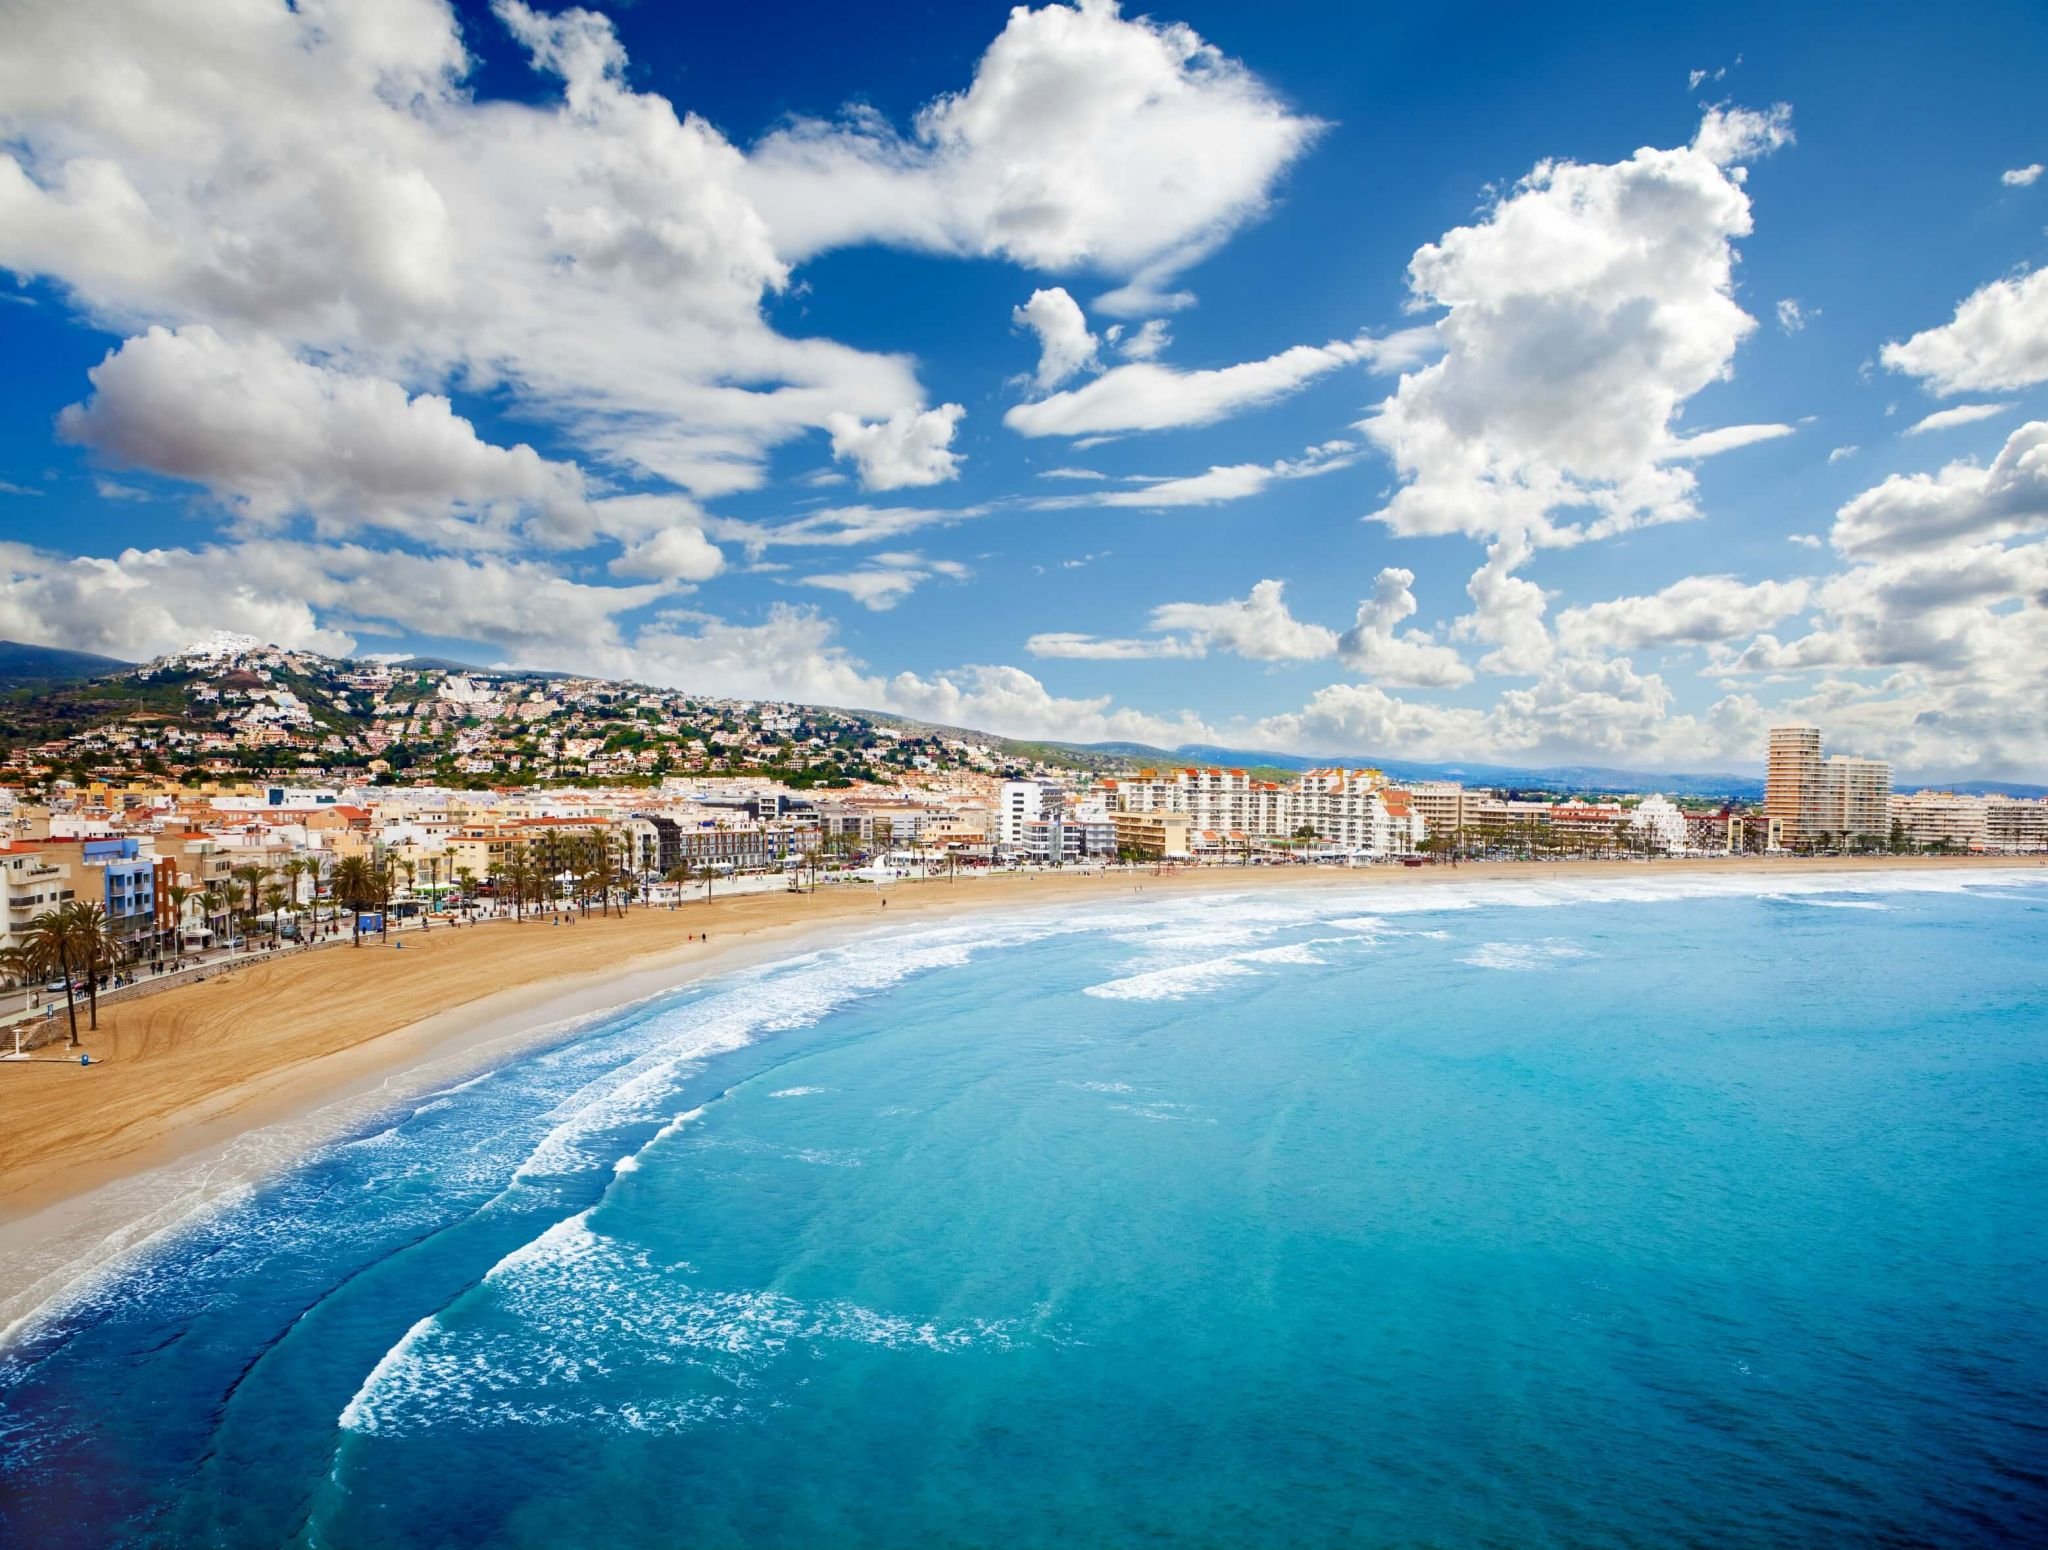 budget friendly family holiday -Spanish beach